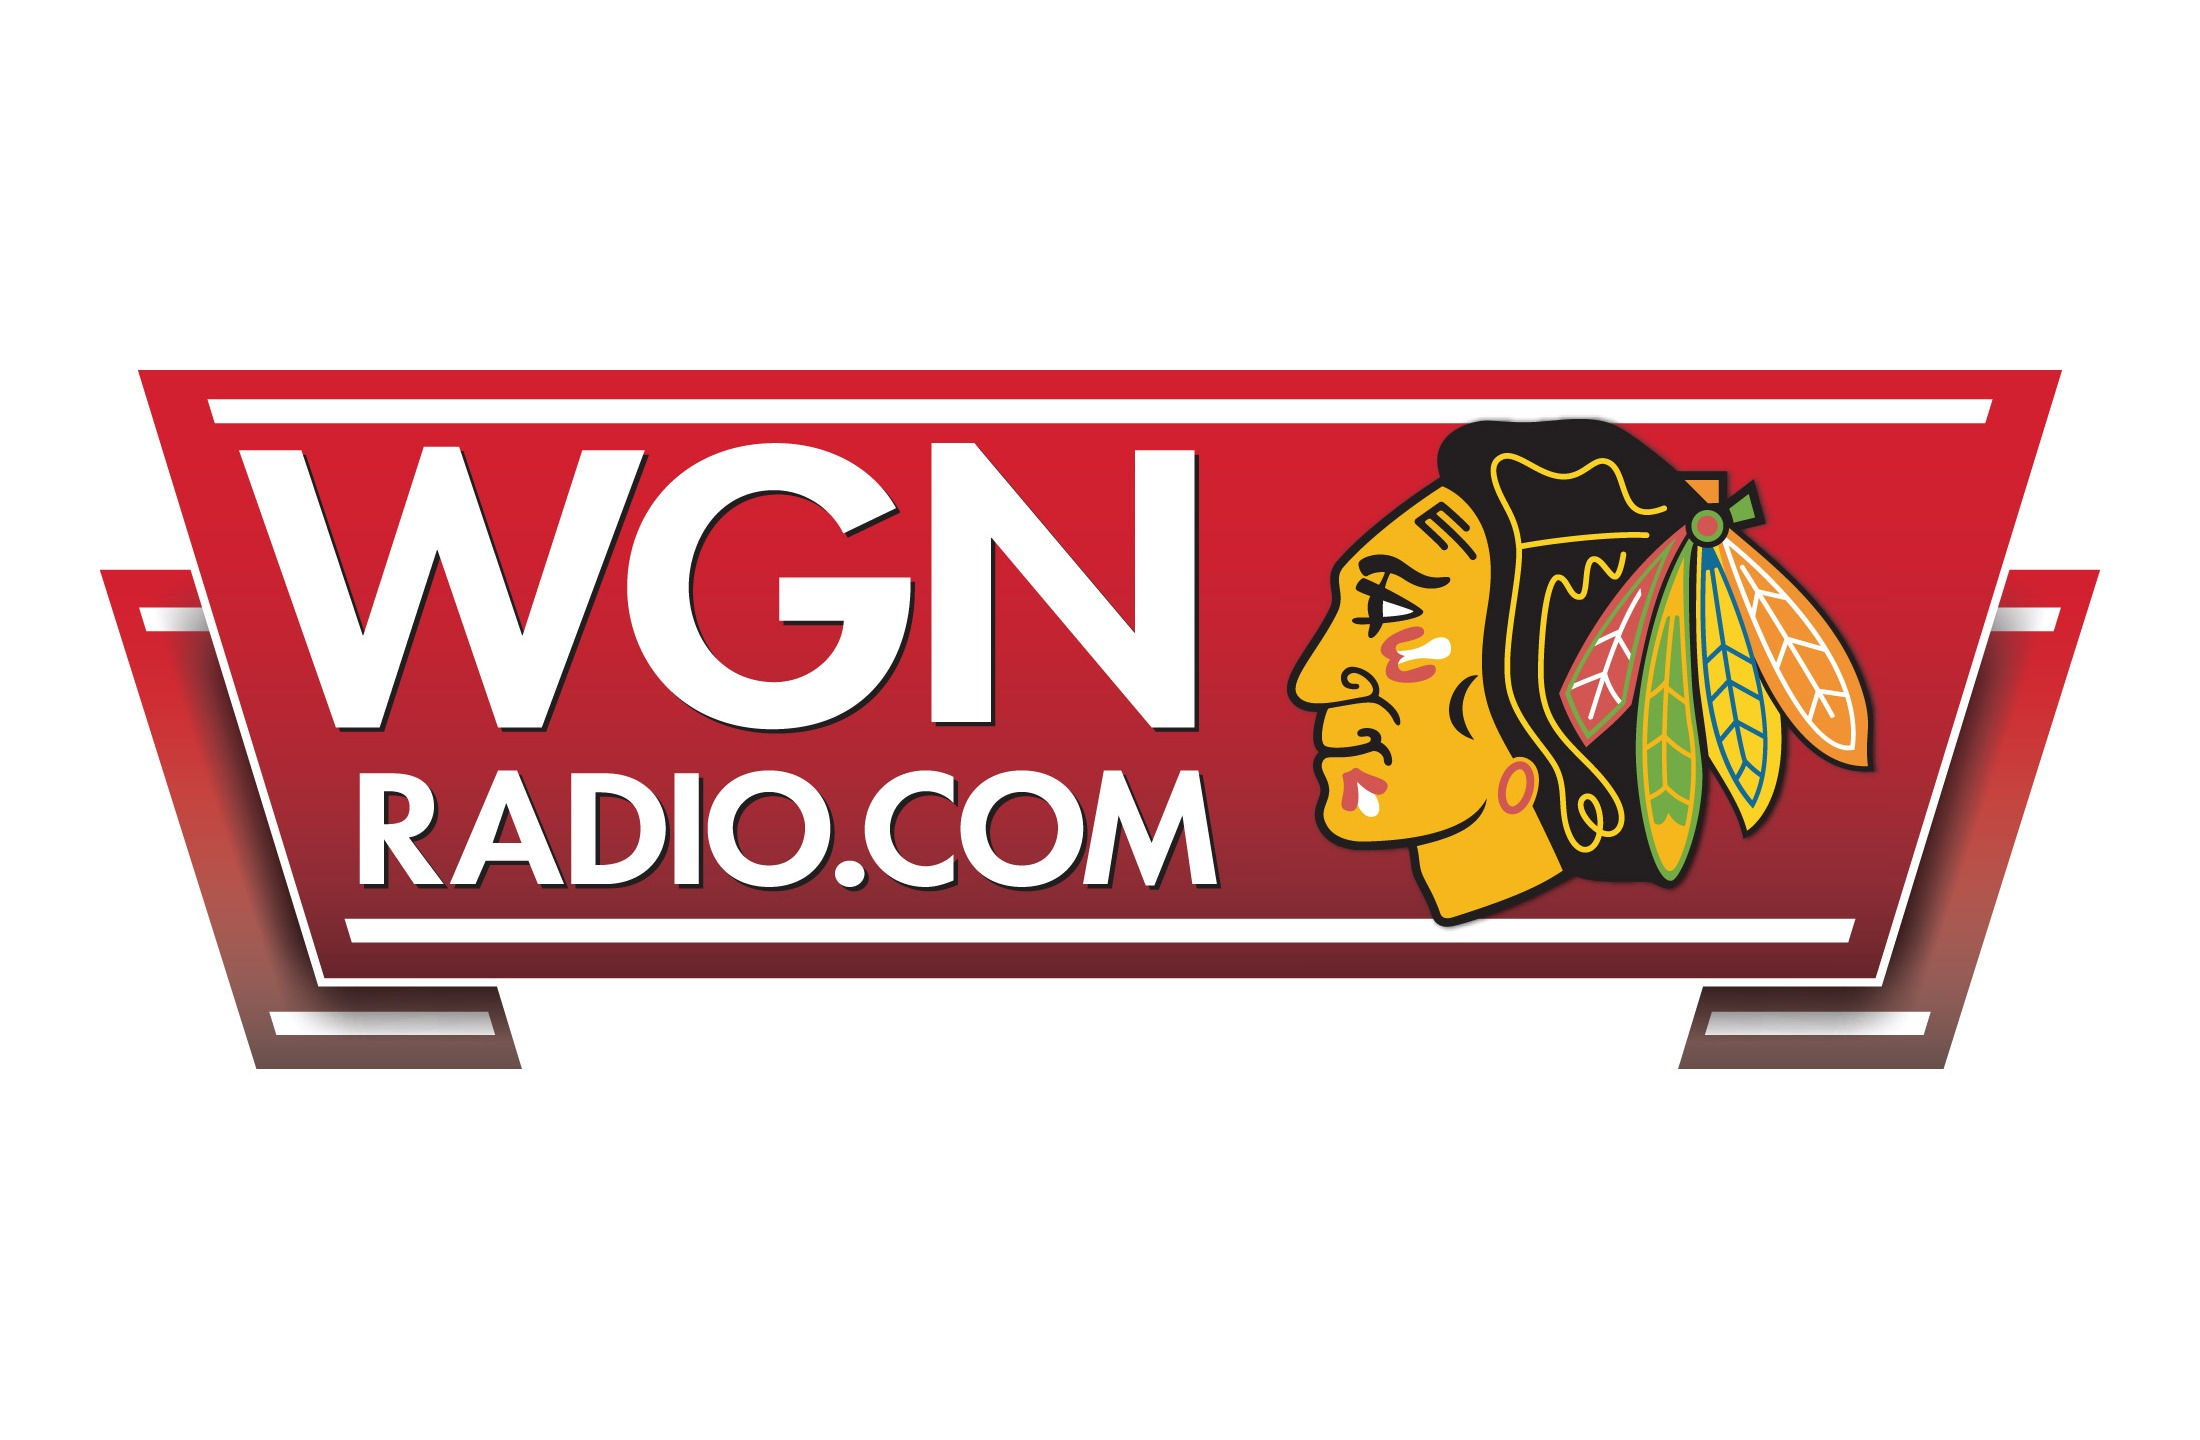 Squat_WGNRADIO.COM_Blackhawks_RGB-sized